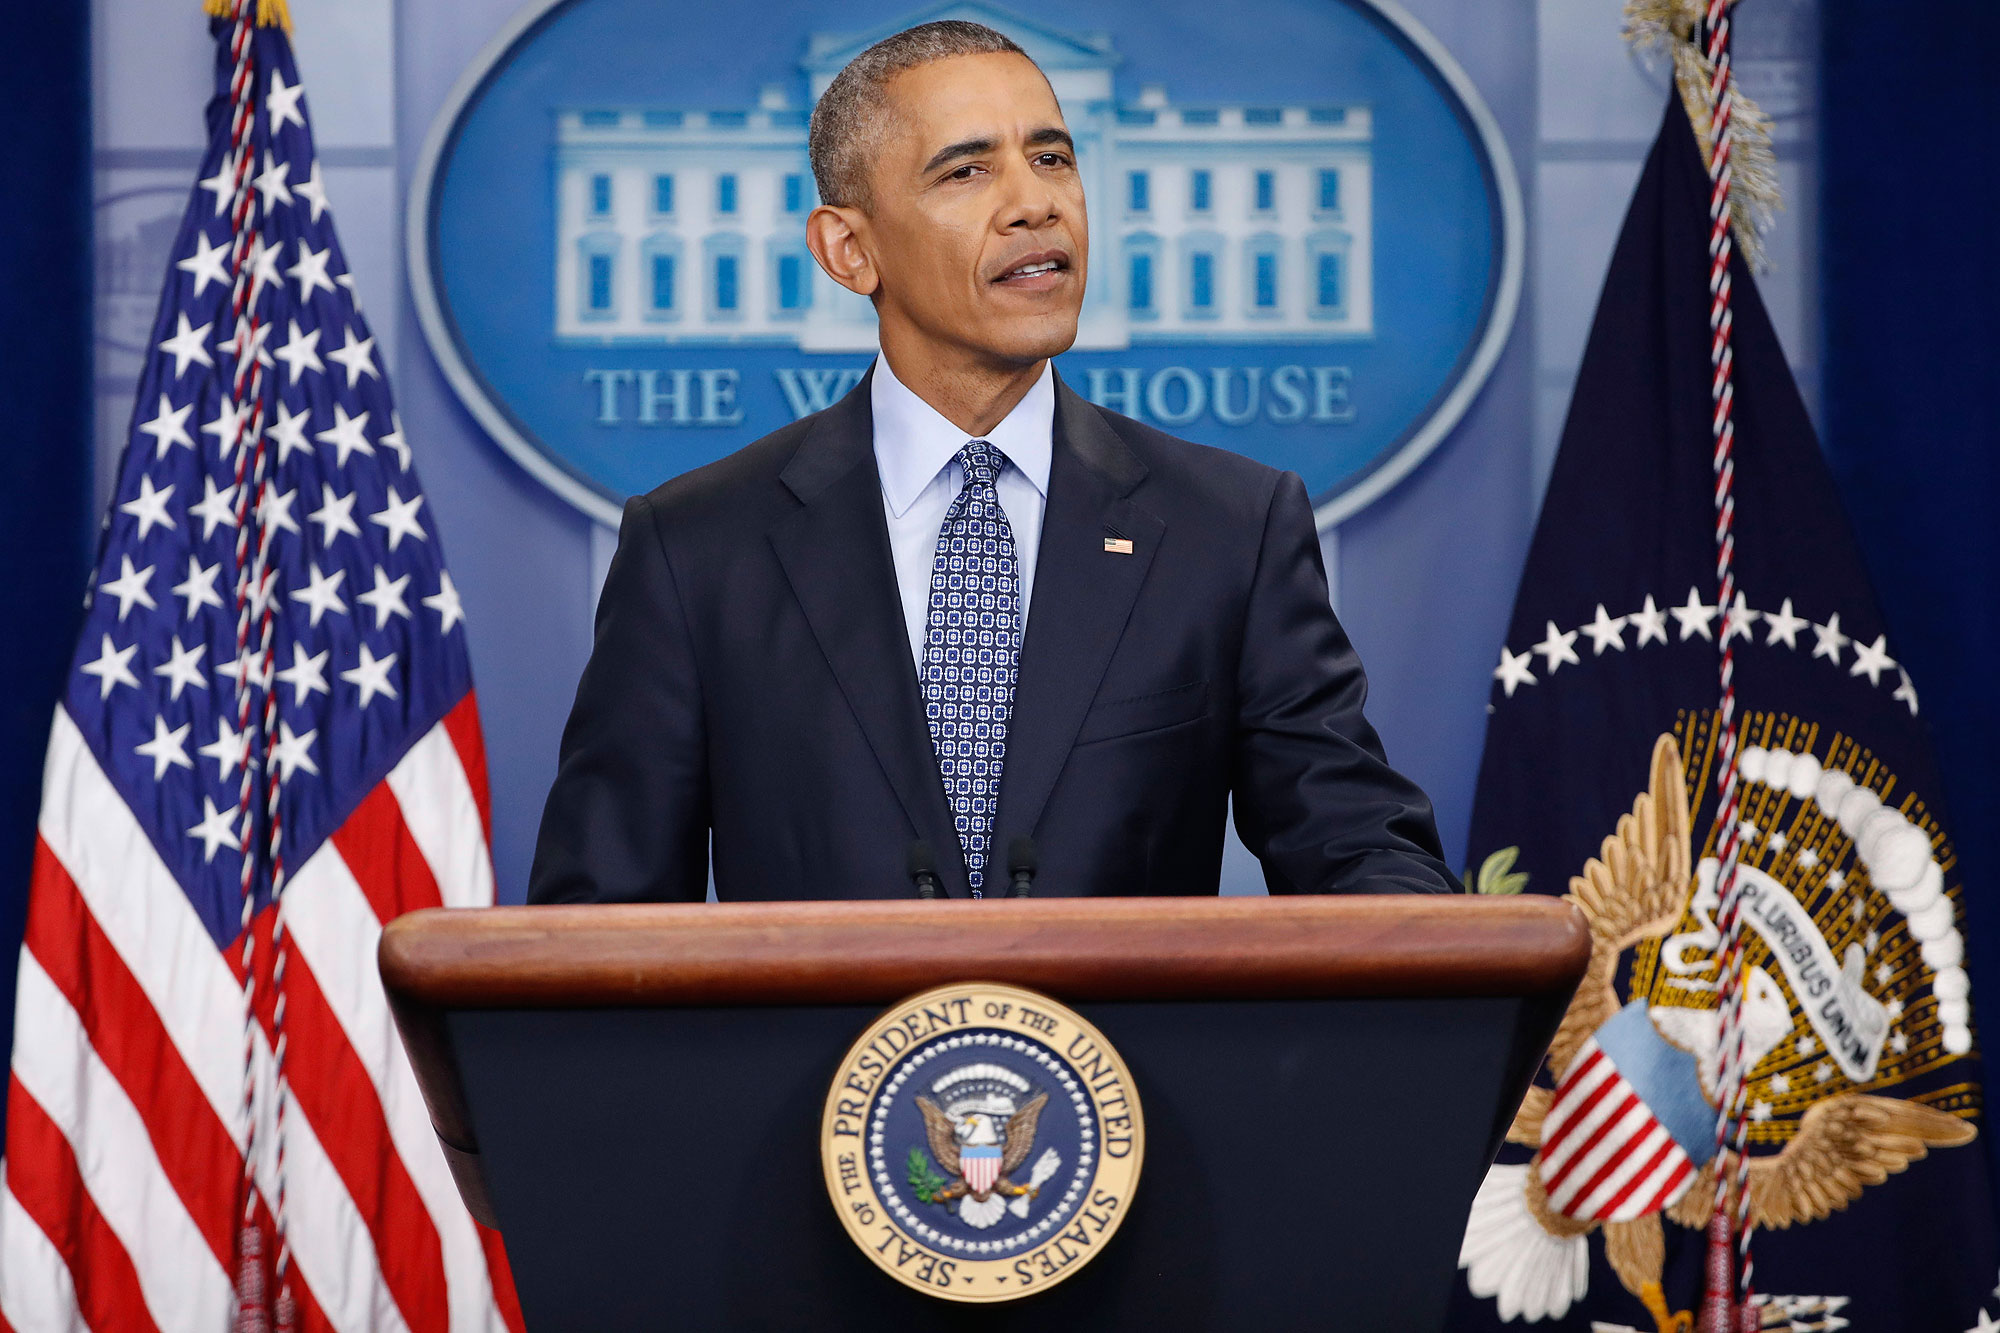 President Barack Obama speaks during his final presidential news conference, Wednesday, Jan. 18, 2017, in the briefing room of the White House in Washington. (AP Photo/Pablo Martinez Monsivais)